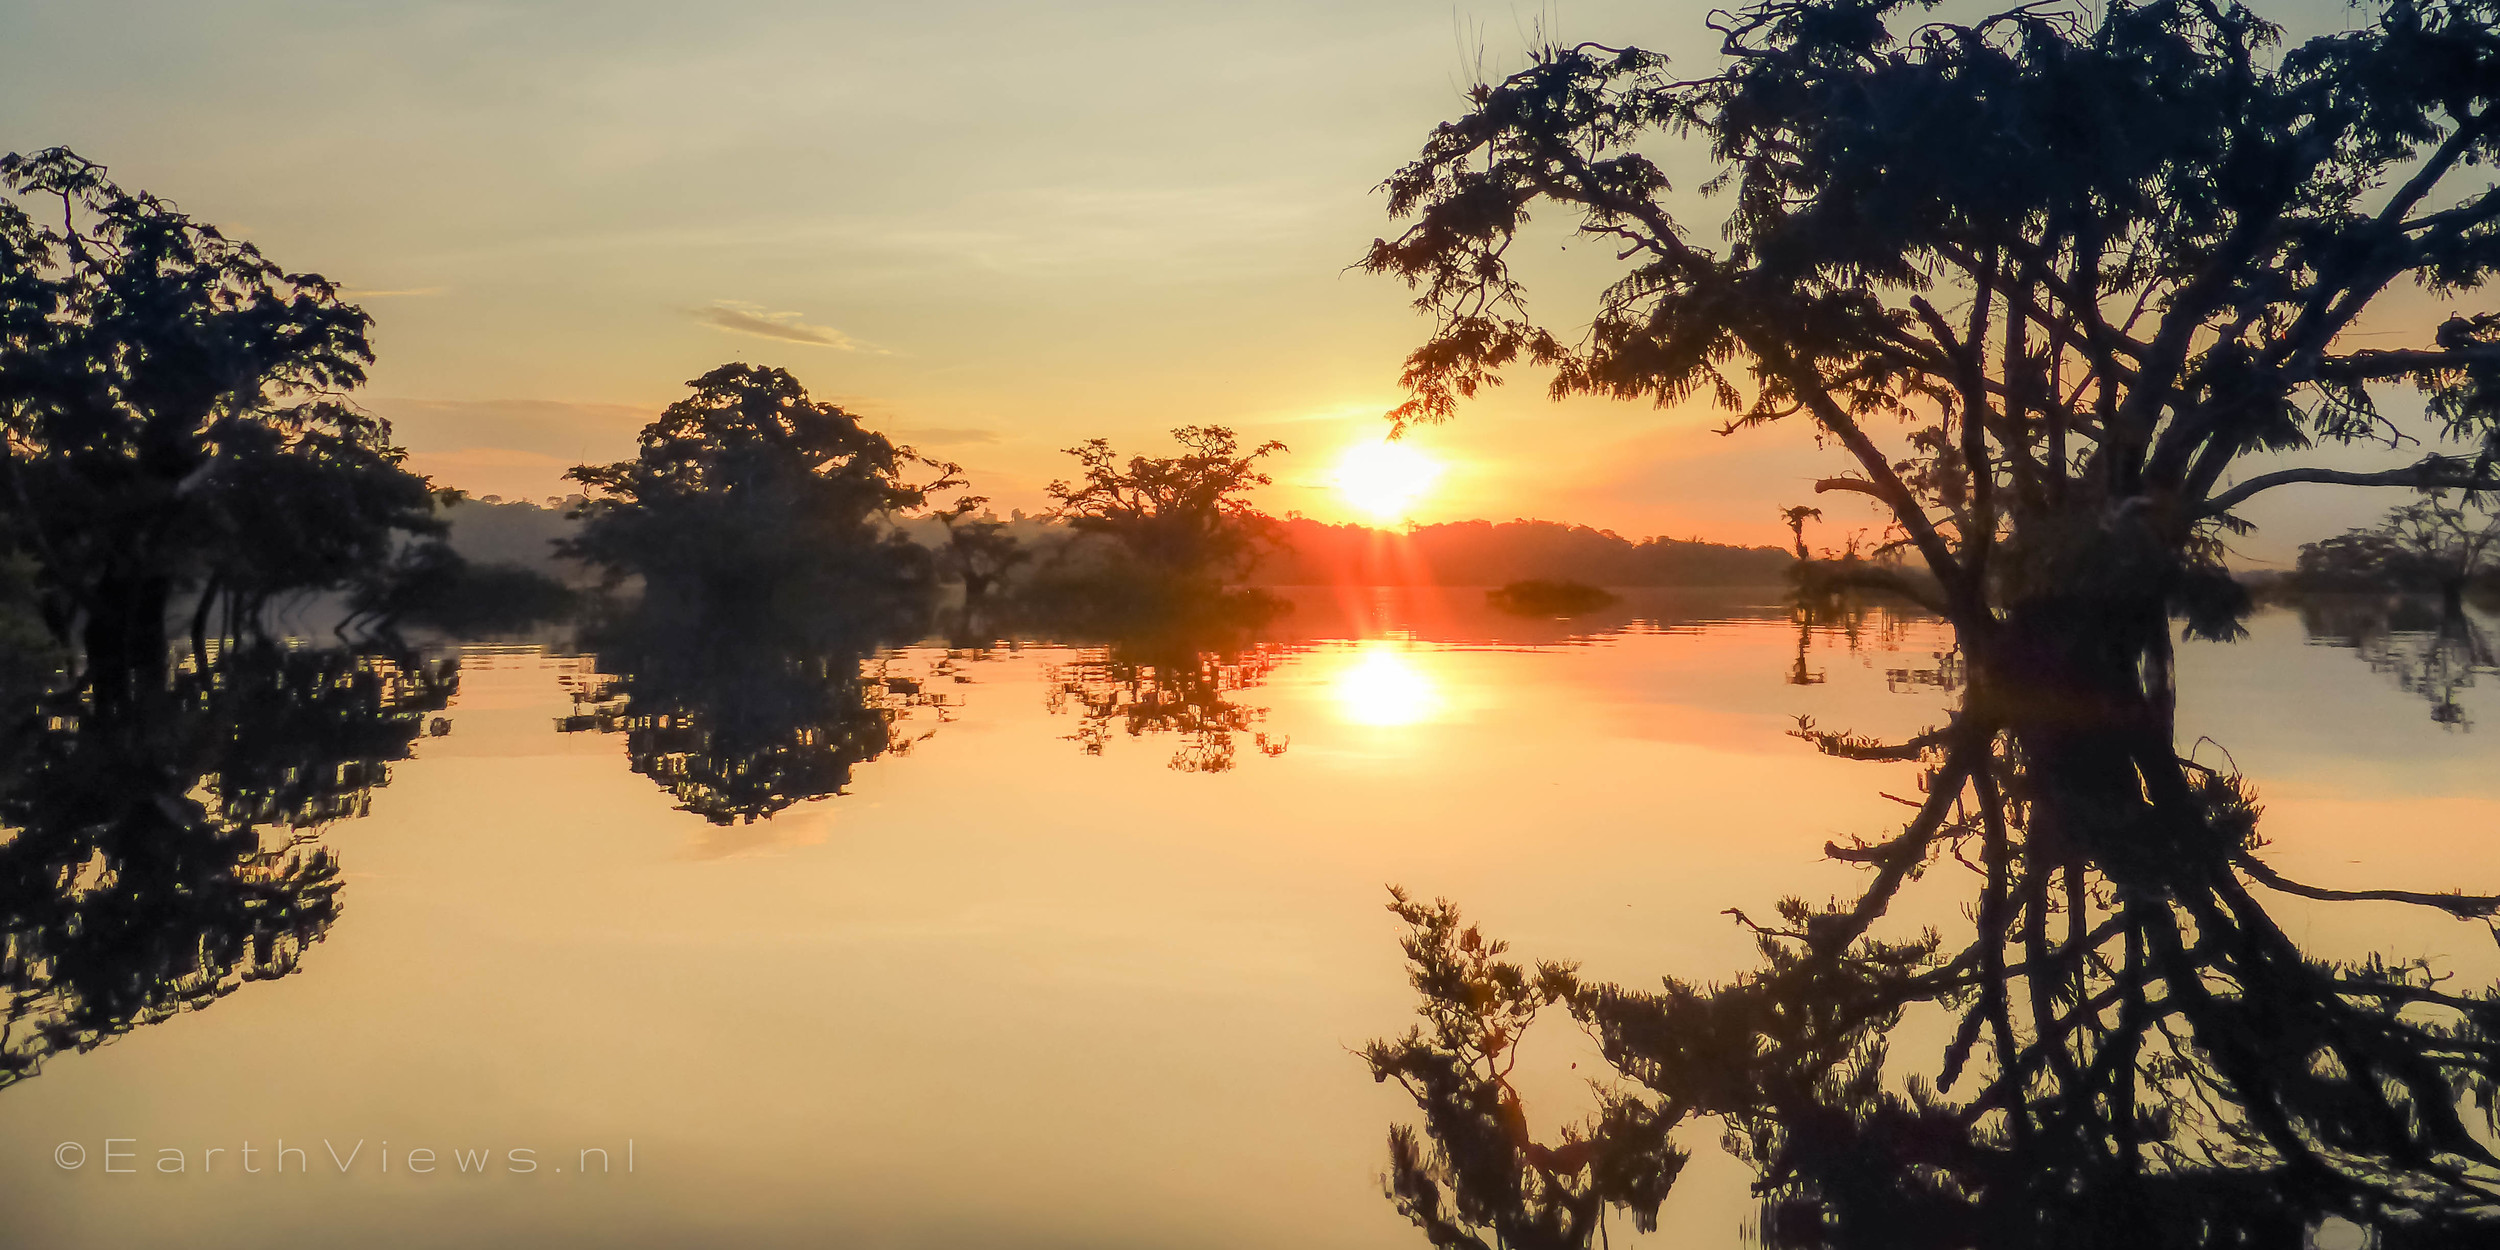 An Amazon morning just after sunrise at 5 a.m.